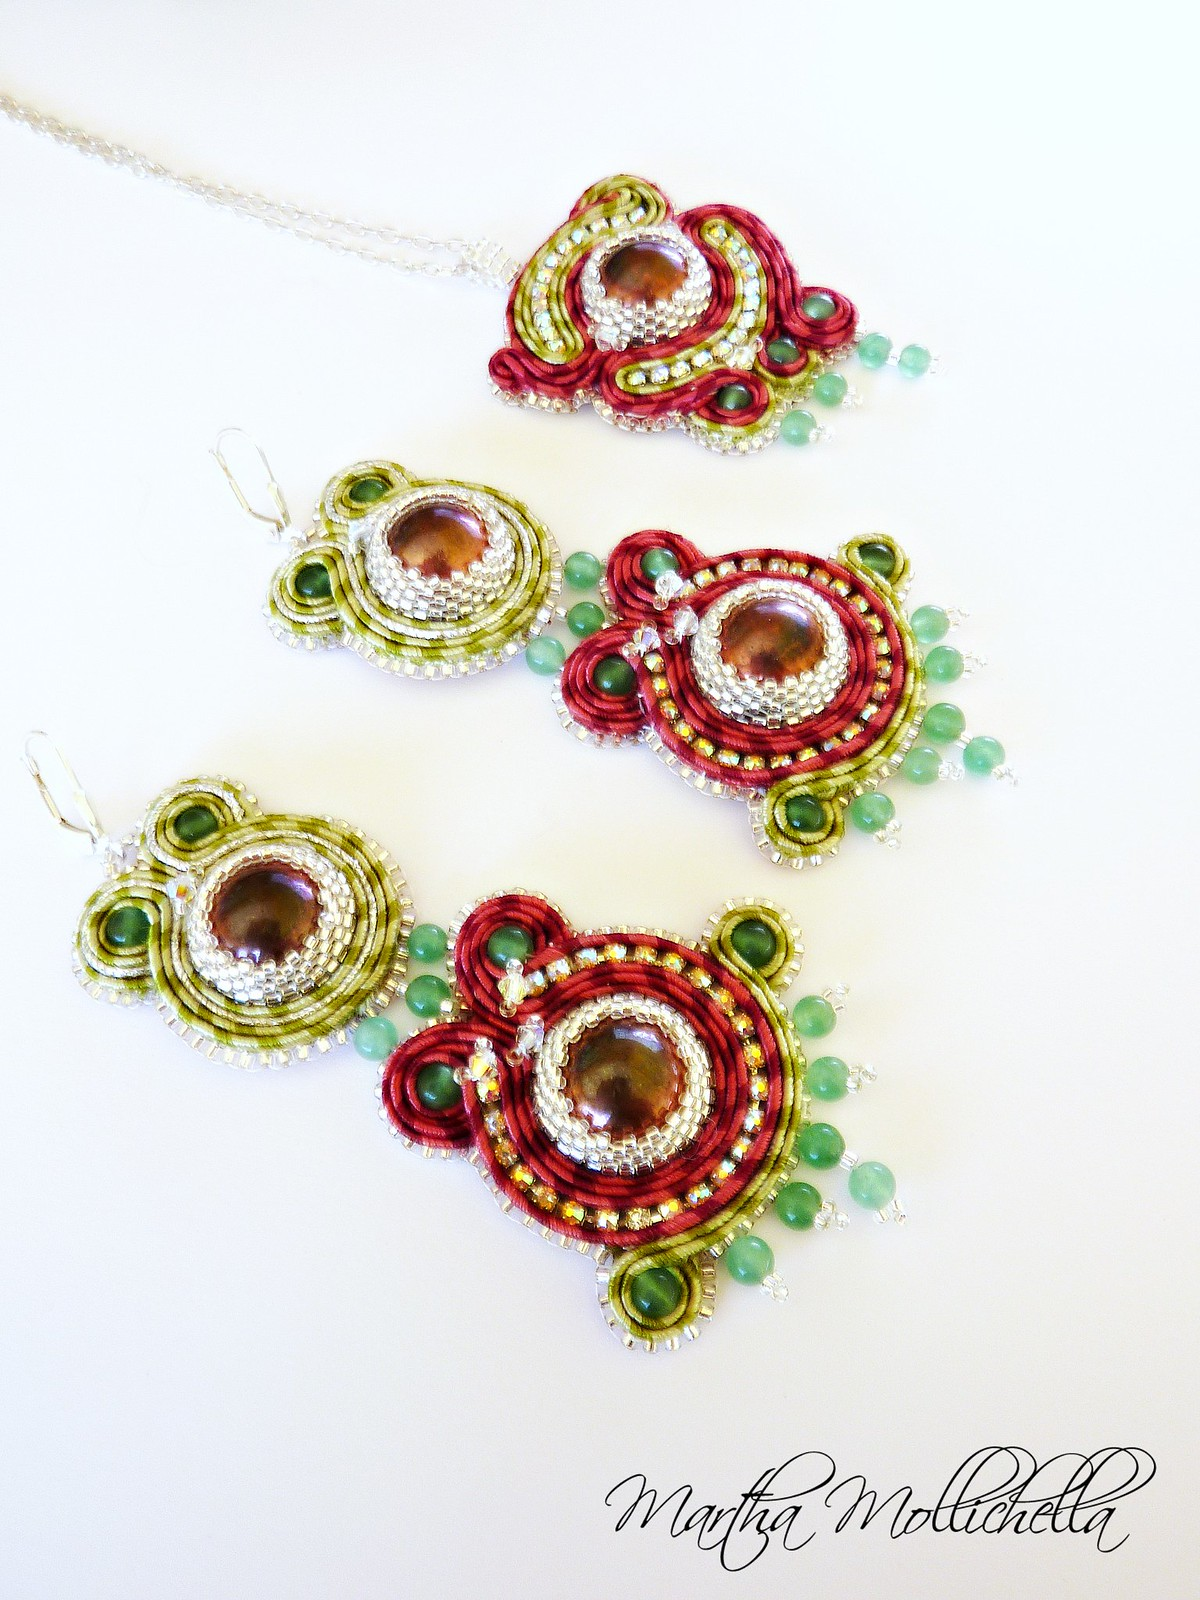 soutache earrings and pendant handmade with beads and avventurine Martha Mollichella Handmade jewelry